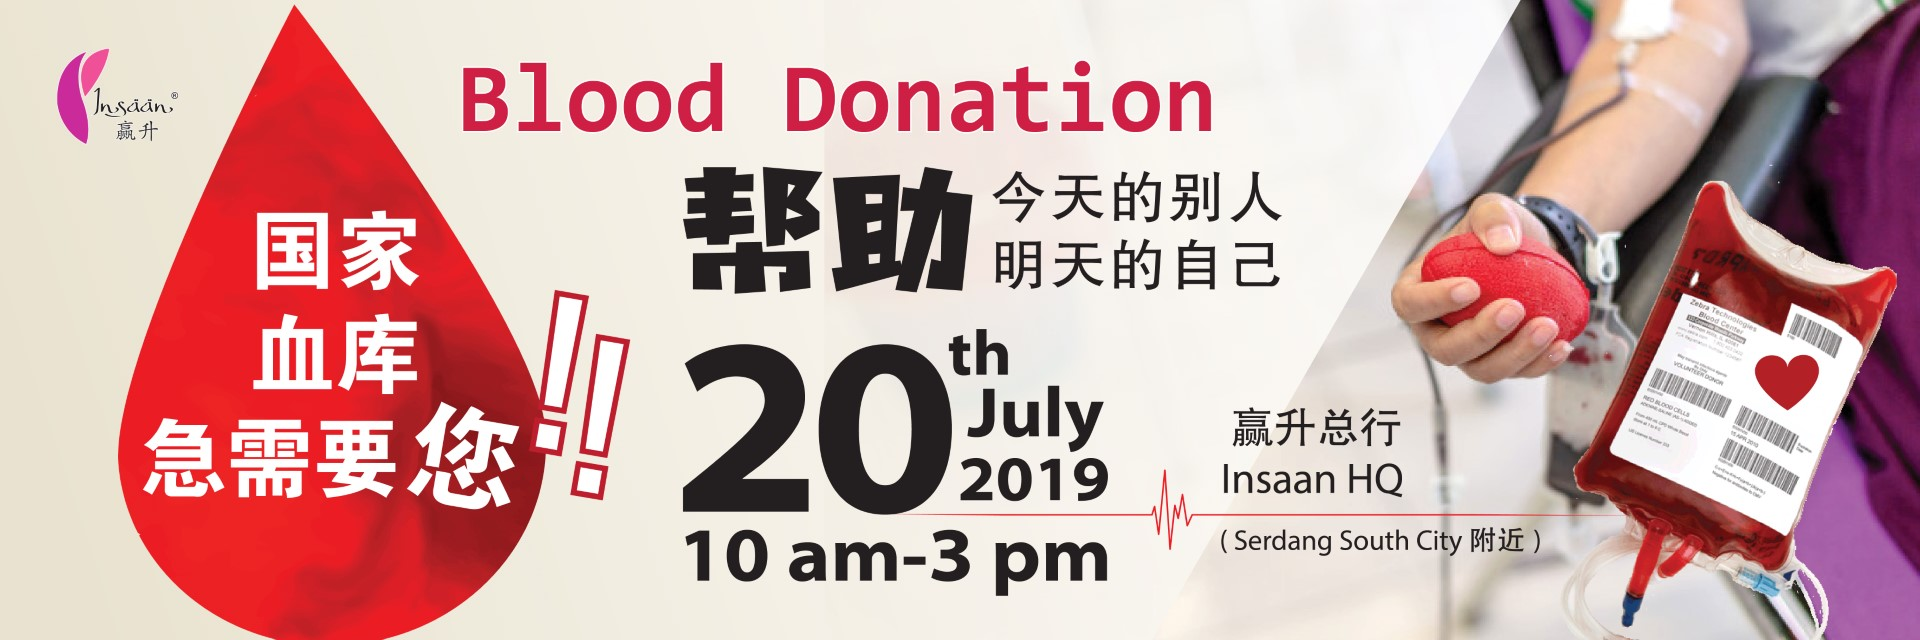 Blood Donation Campaign 2019